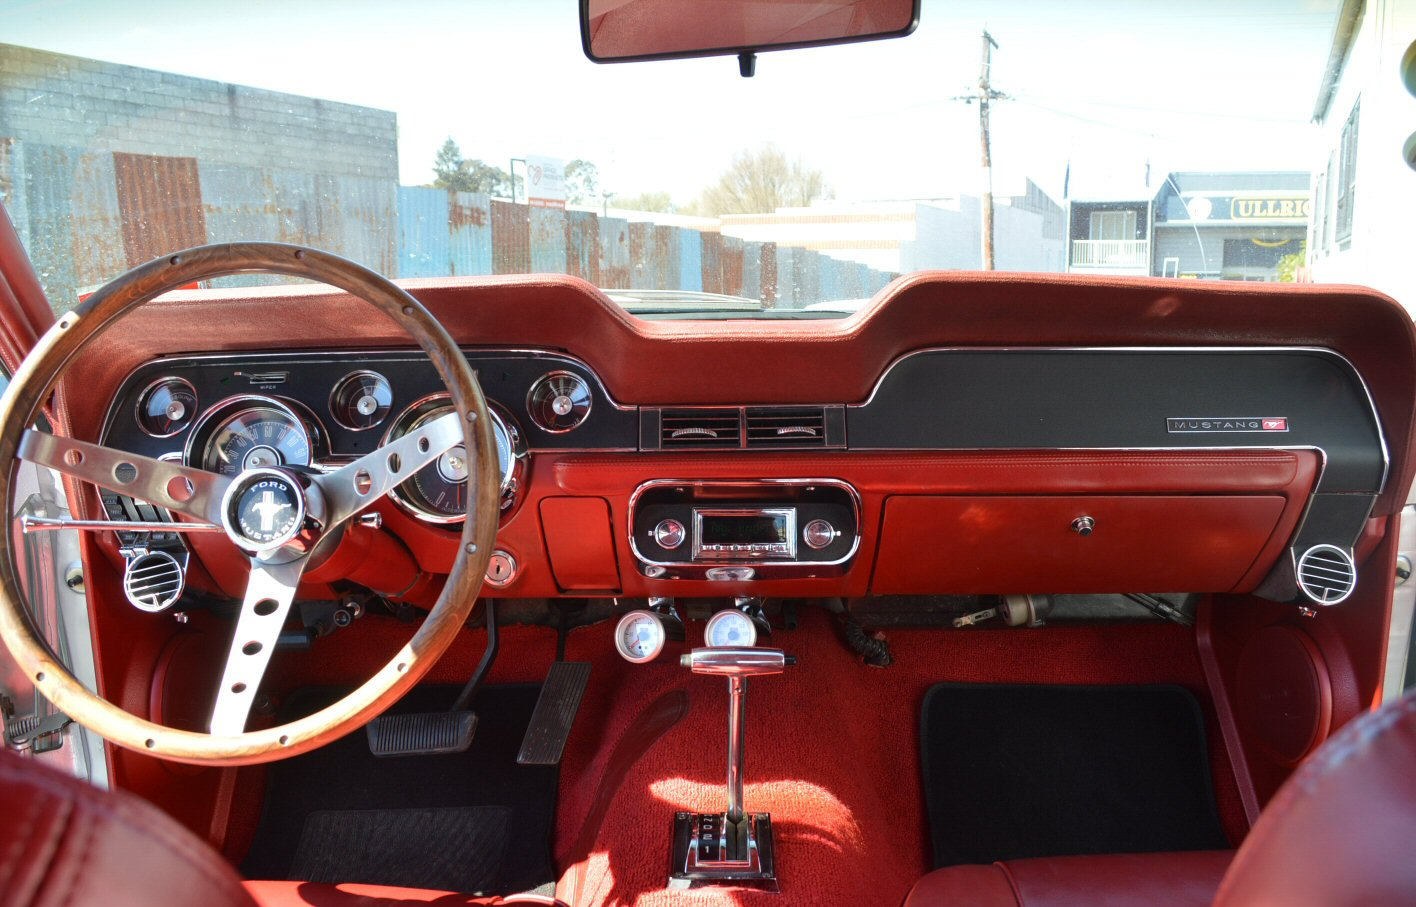 1967 Ford Mustang with RetoSound Radio Install by Phoenix Audio NZ (2).jpg